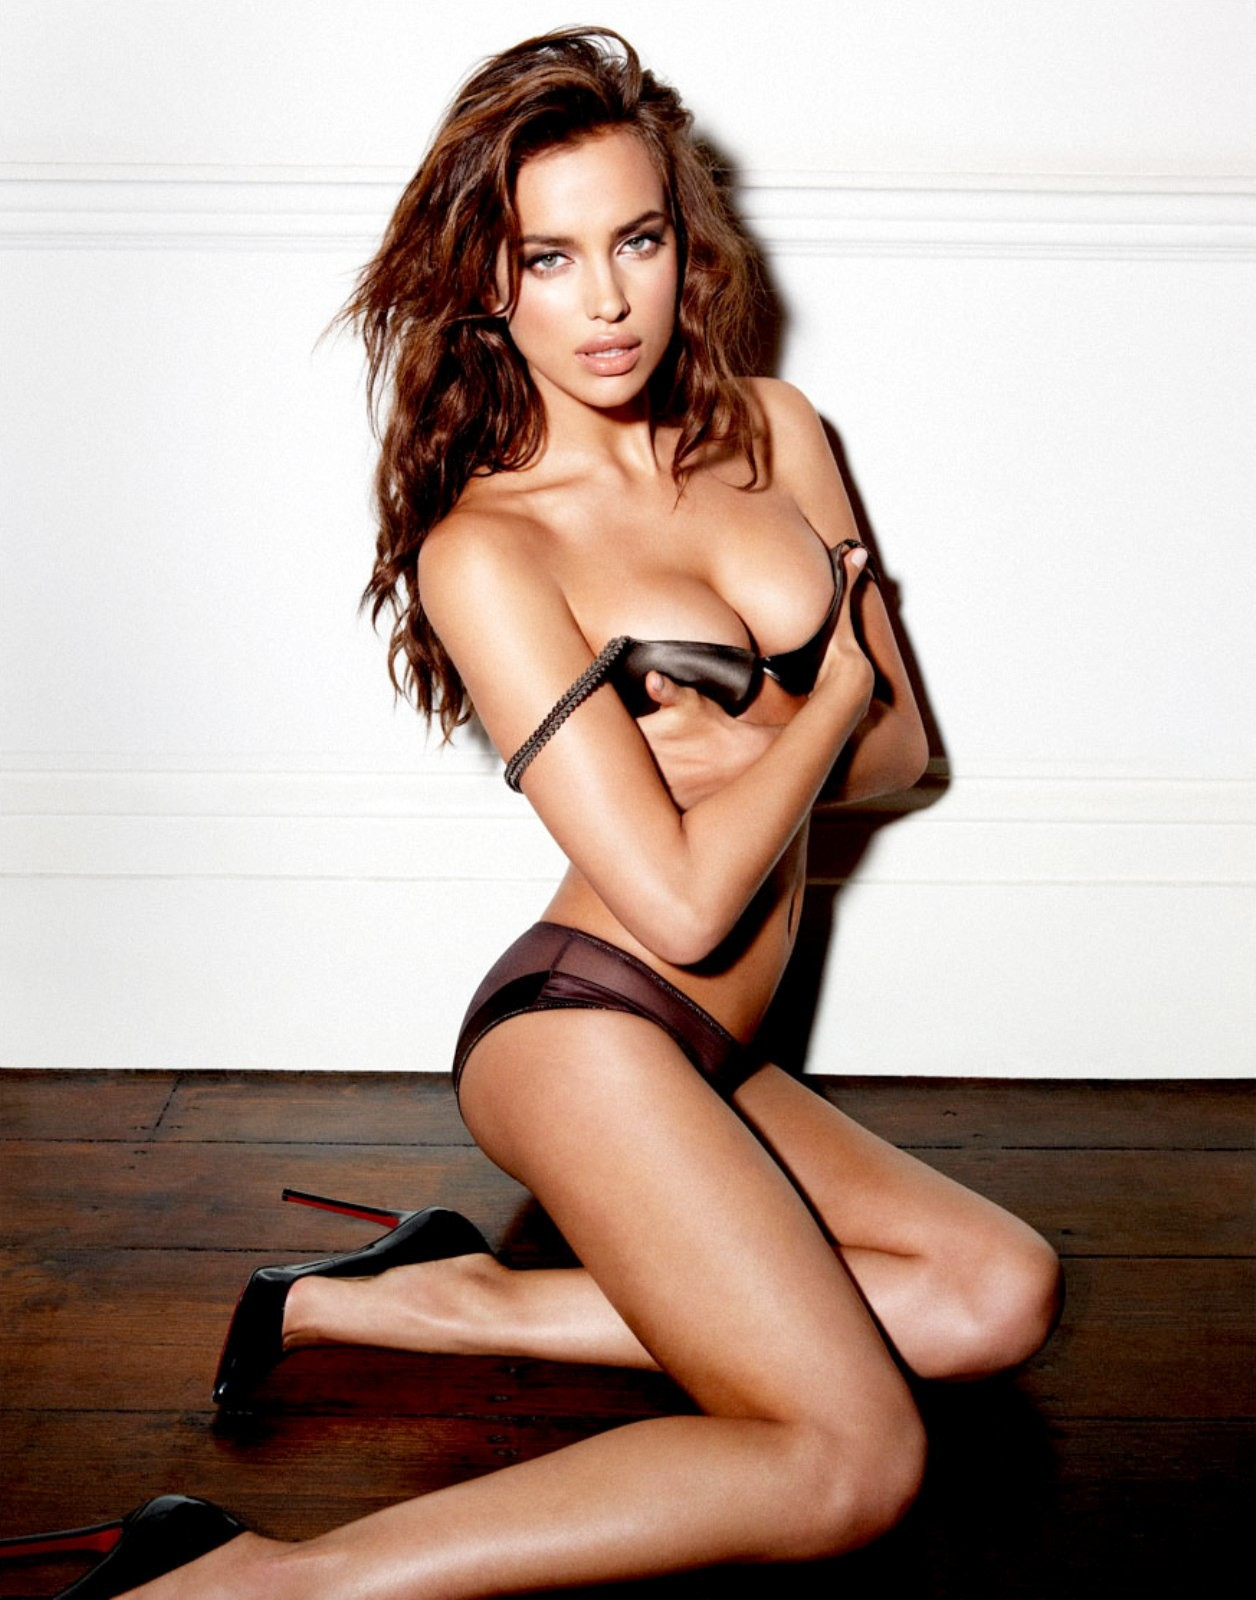 Russian model Irina Shayk Shot by photographer Yu Tsai For Esquire Magazine February 2012